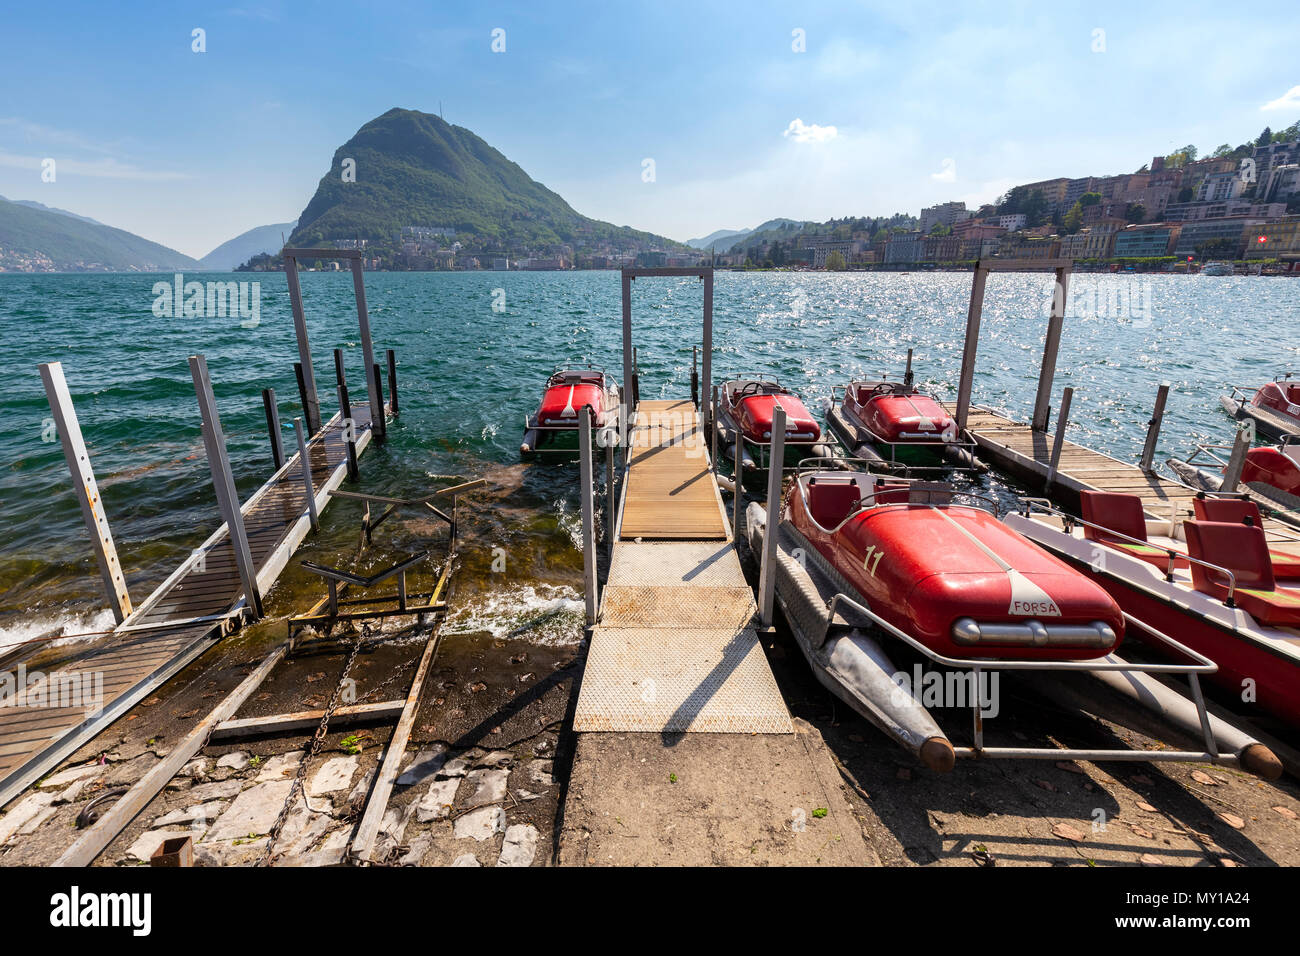 View of Lugano lakefront with the typical pedalos on a spring day, Canton Ticino, Switzerland. Stock Photo